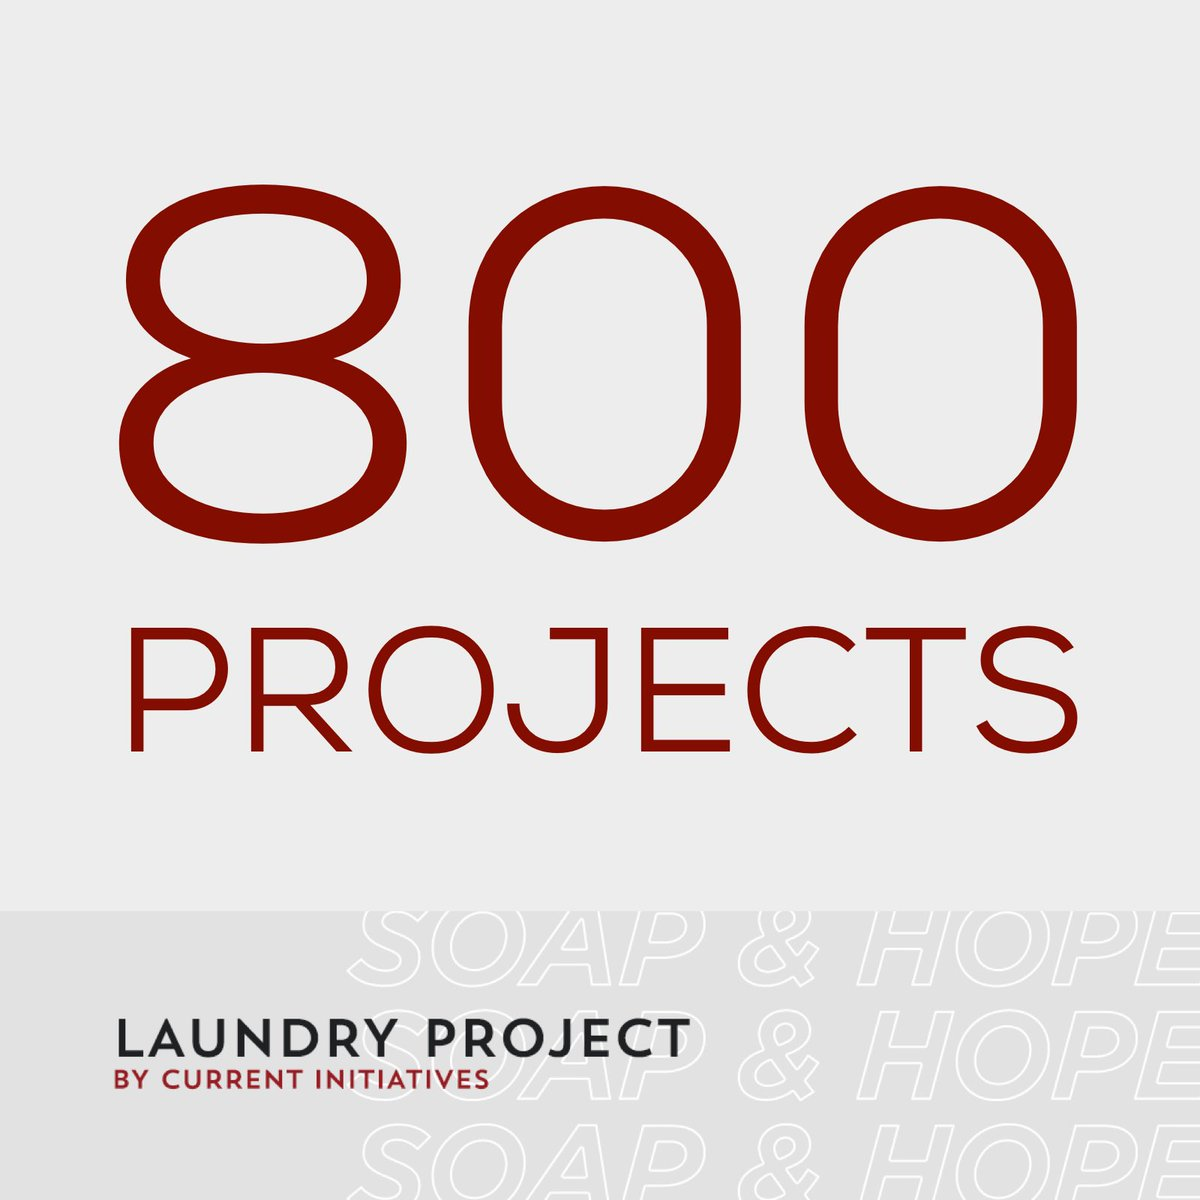 Over the last 13 Years we've hosted 800 Laundry Project events / washed 2.1 MILLION + Pounds of Laundry! 🔥 https://t.co/k9TJCsRd2z